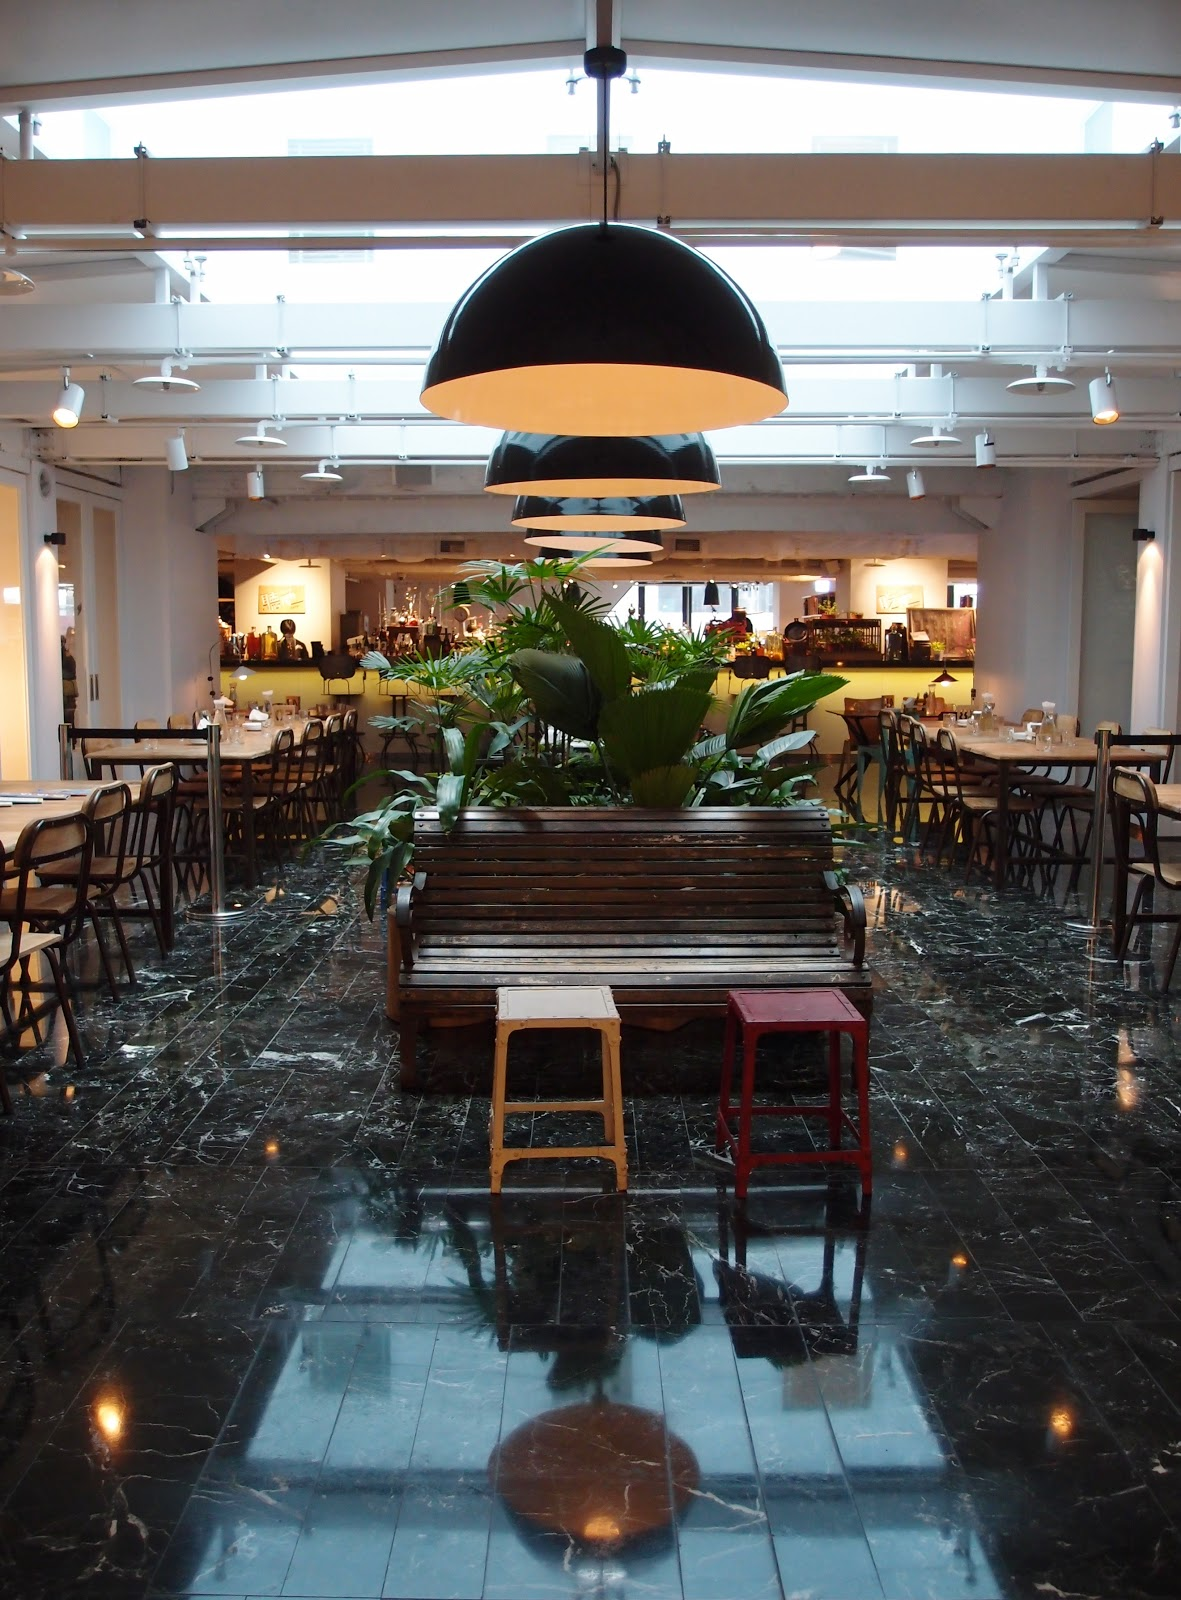 Y lyn 39 s journal of food fun travel amba hotel for Design hotel ximending